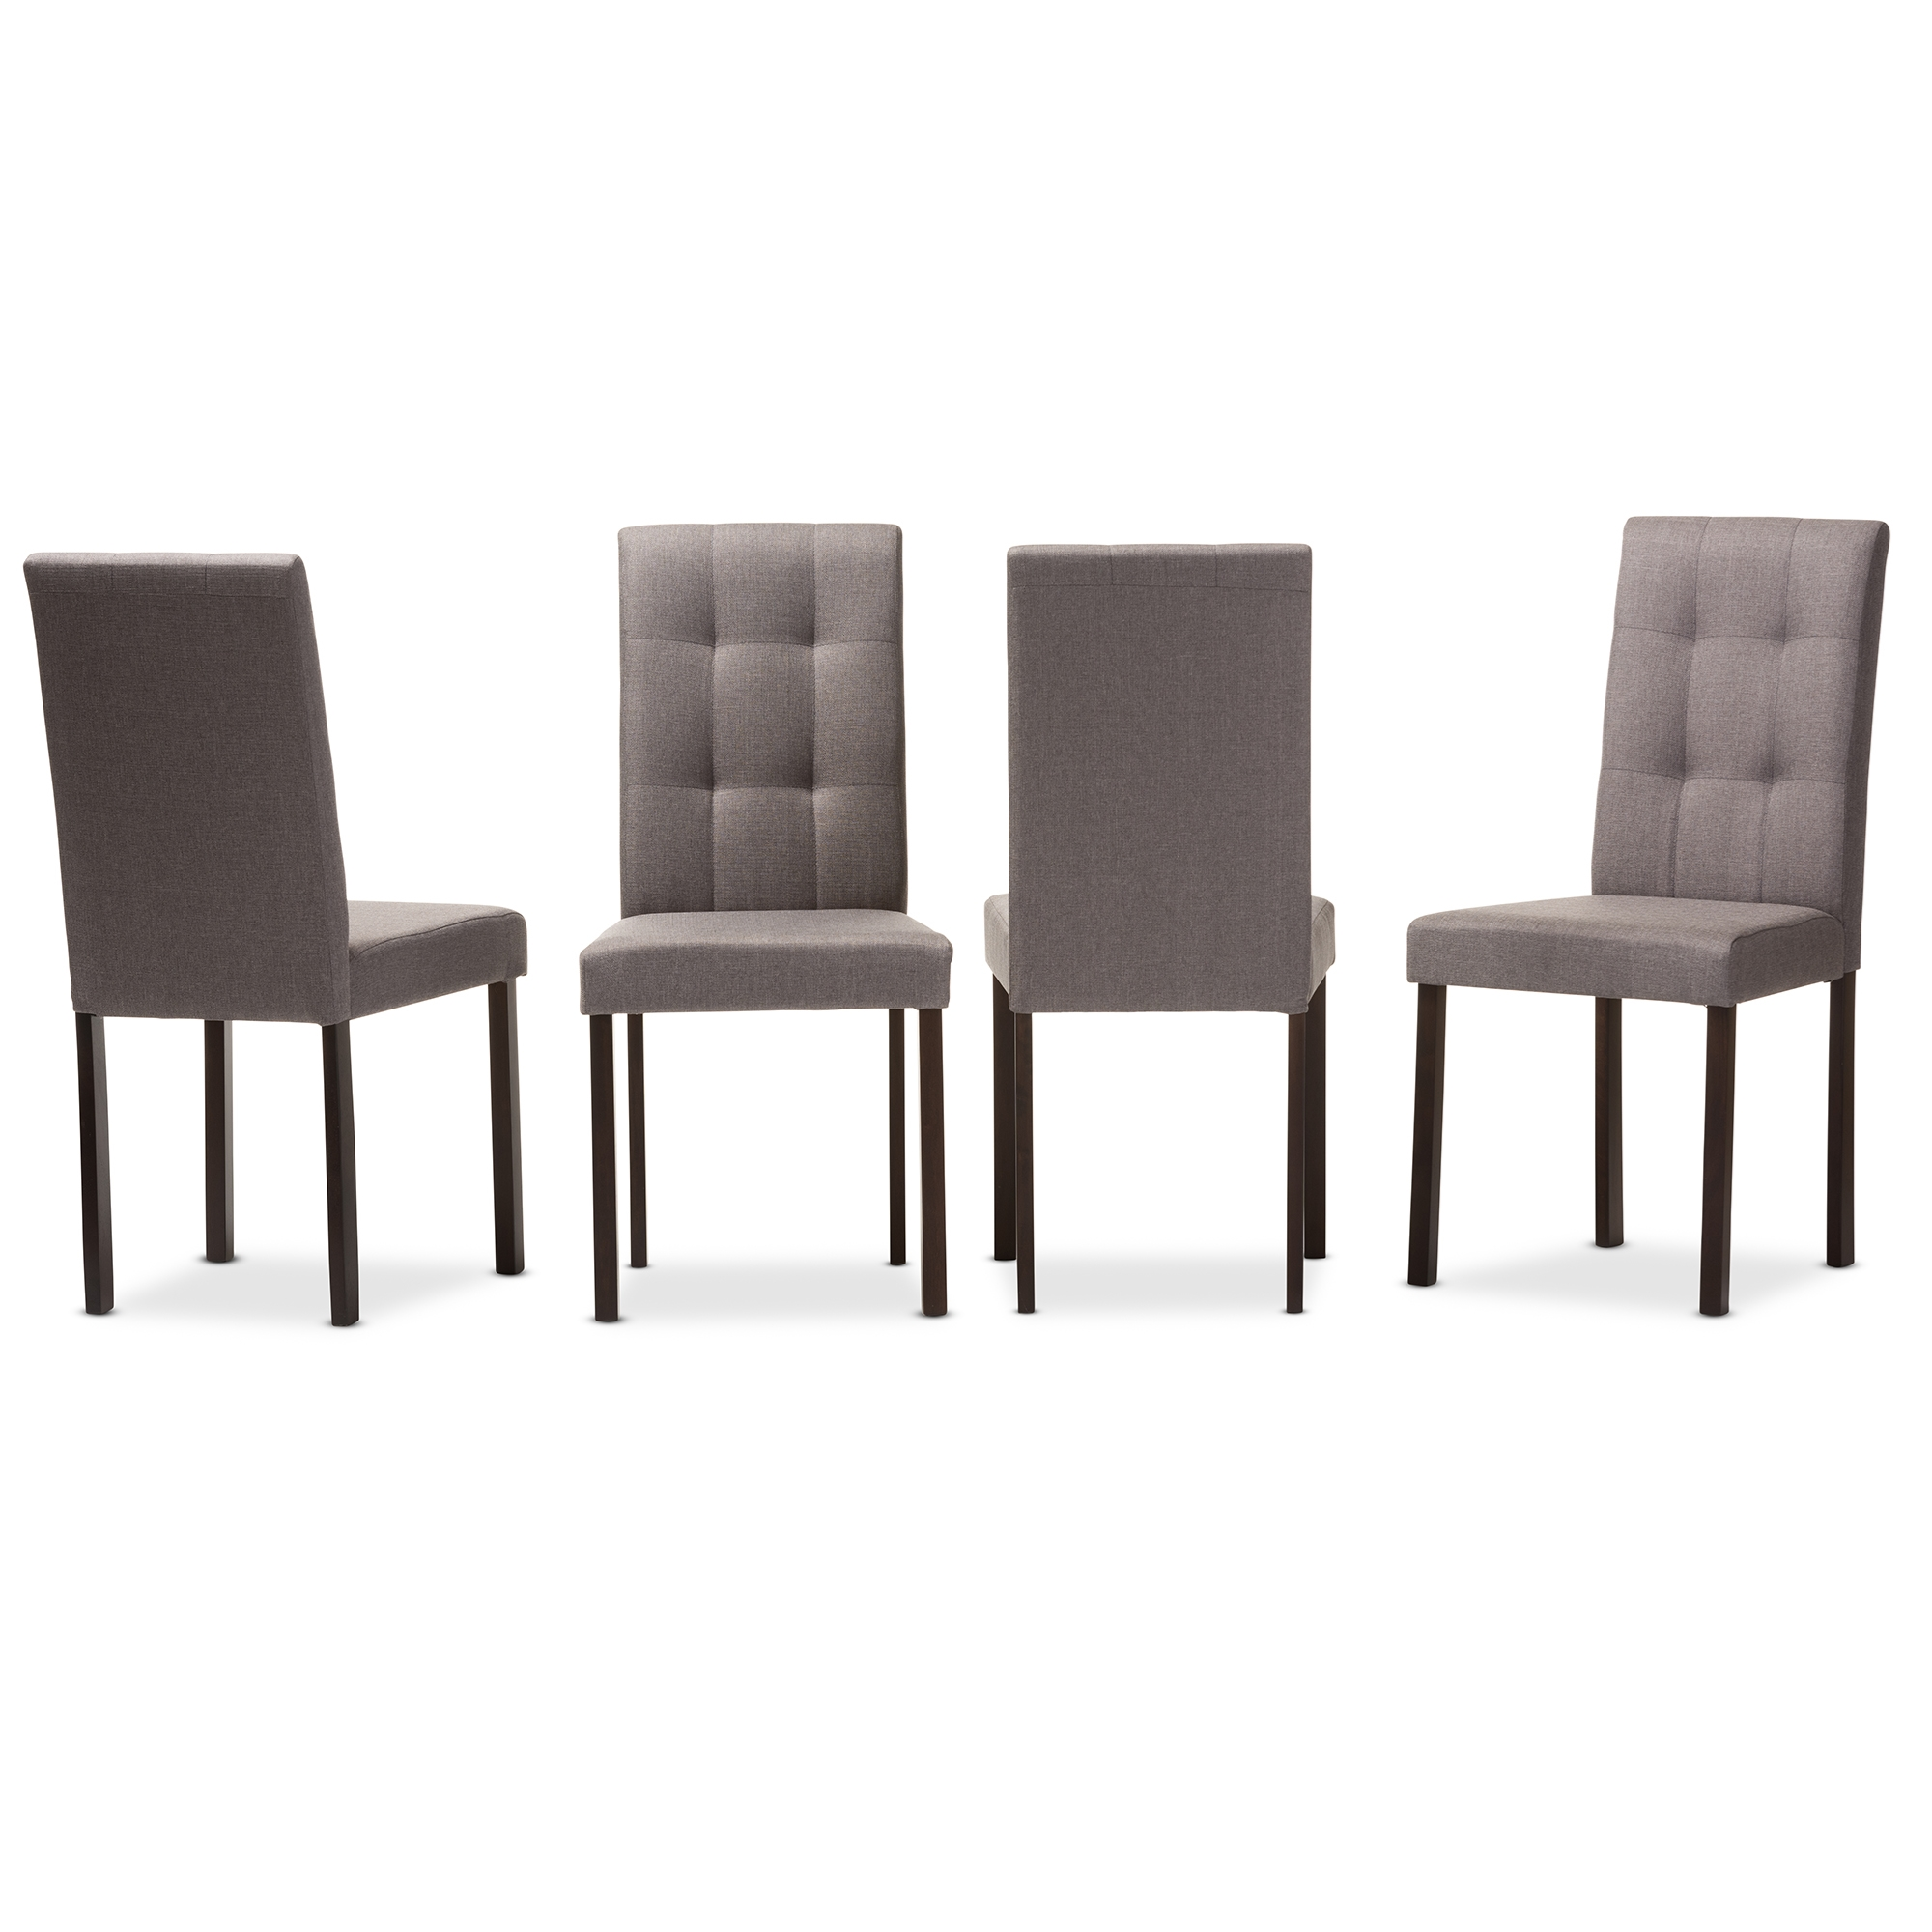 Captivating Stunning Wholesale Dining Room Chairs Images